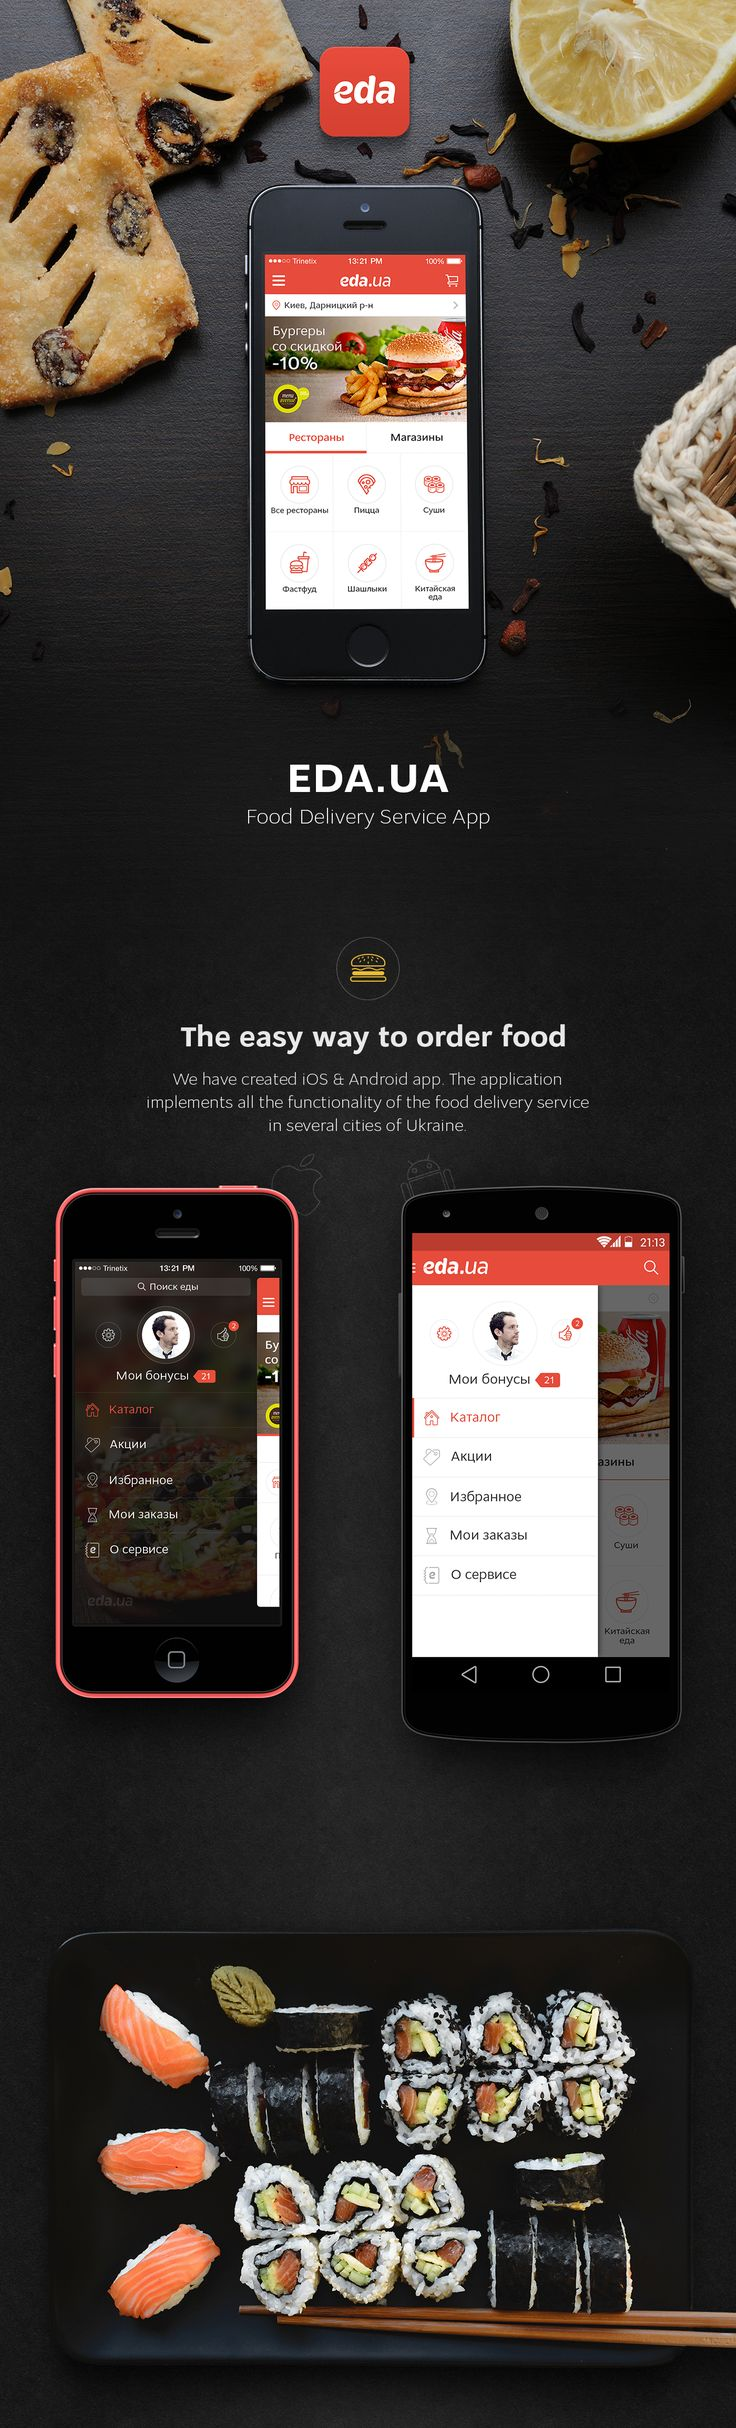 Eda.ua — Food Delivery App on Behance